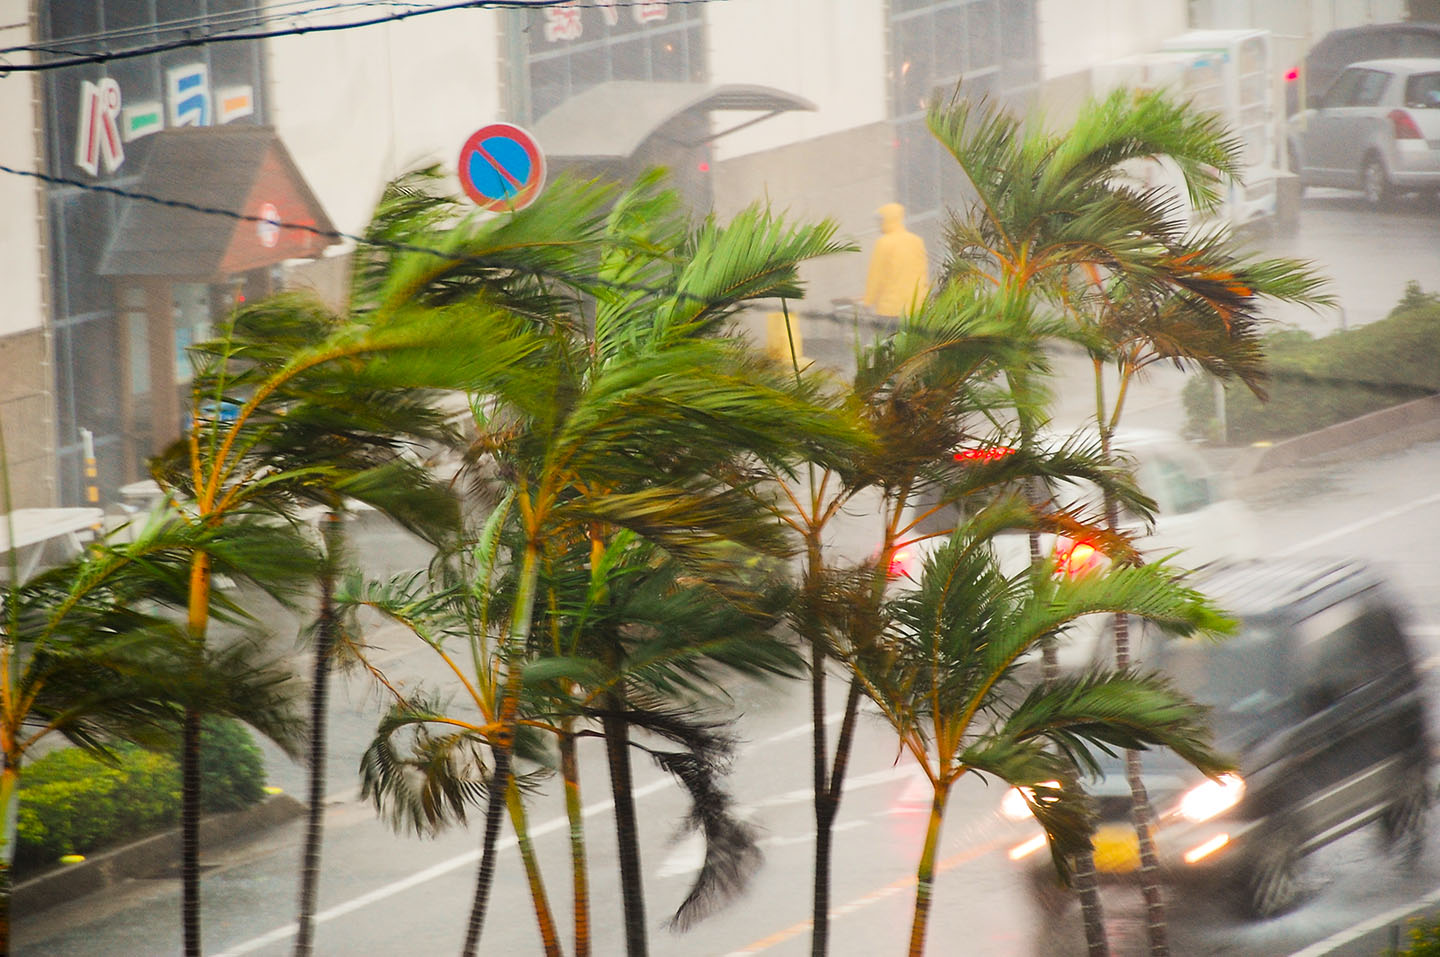 Typhoons in Japan : What you need to know